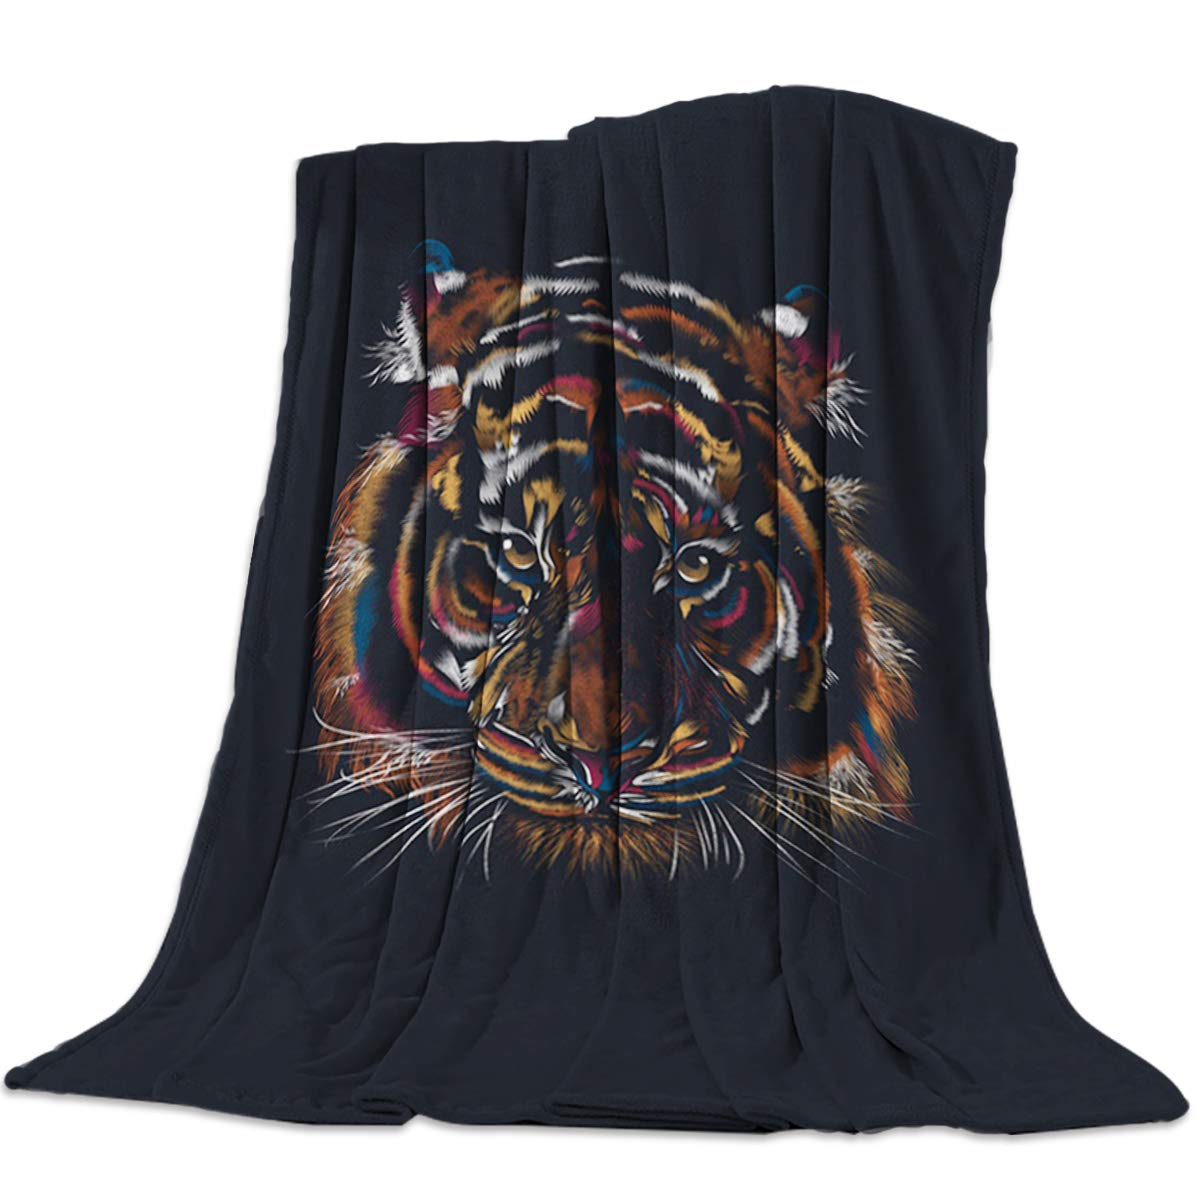 Tiger 2658lyag8123 49x79inch=125x200cm YEHO Art Gallery Flannel Fleece Bed Blanket Soft Kids ThrowBlankets for Girls Boys,Wood Grain Pattern with Flower,Comfortable Blankets for Bedroom Living Room Sofa Couch,49x59inch